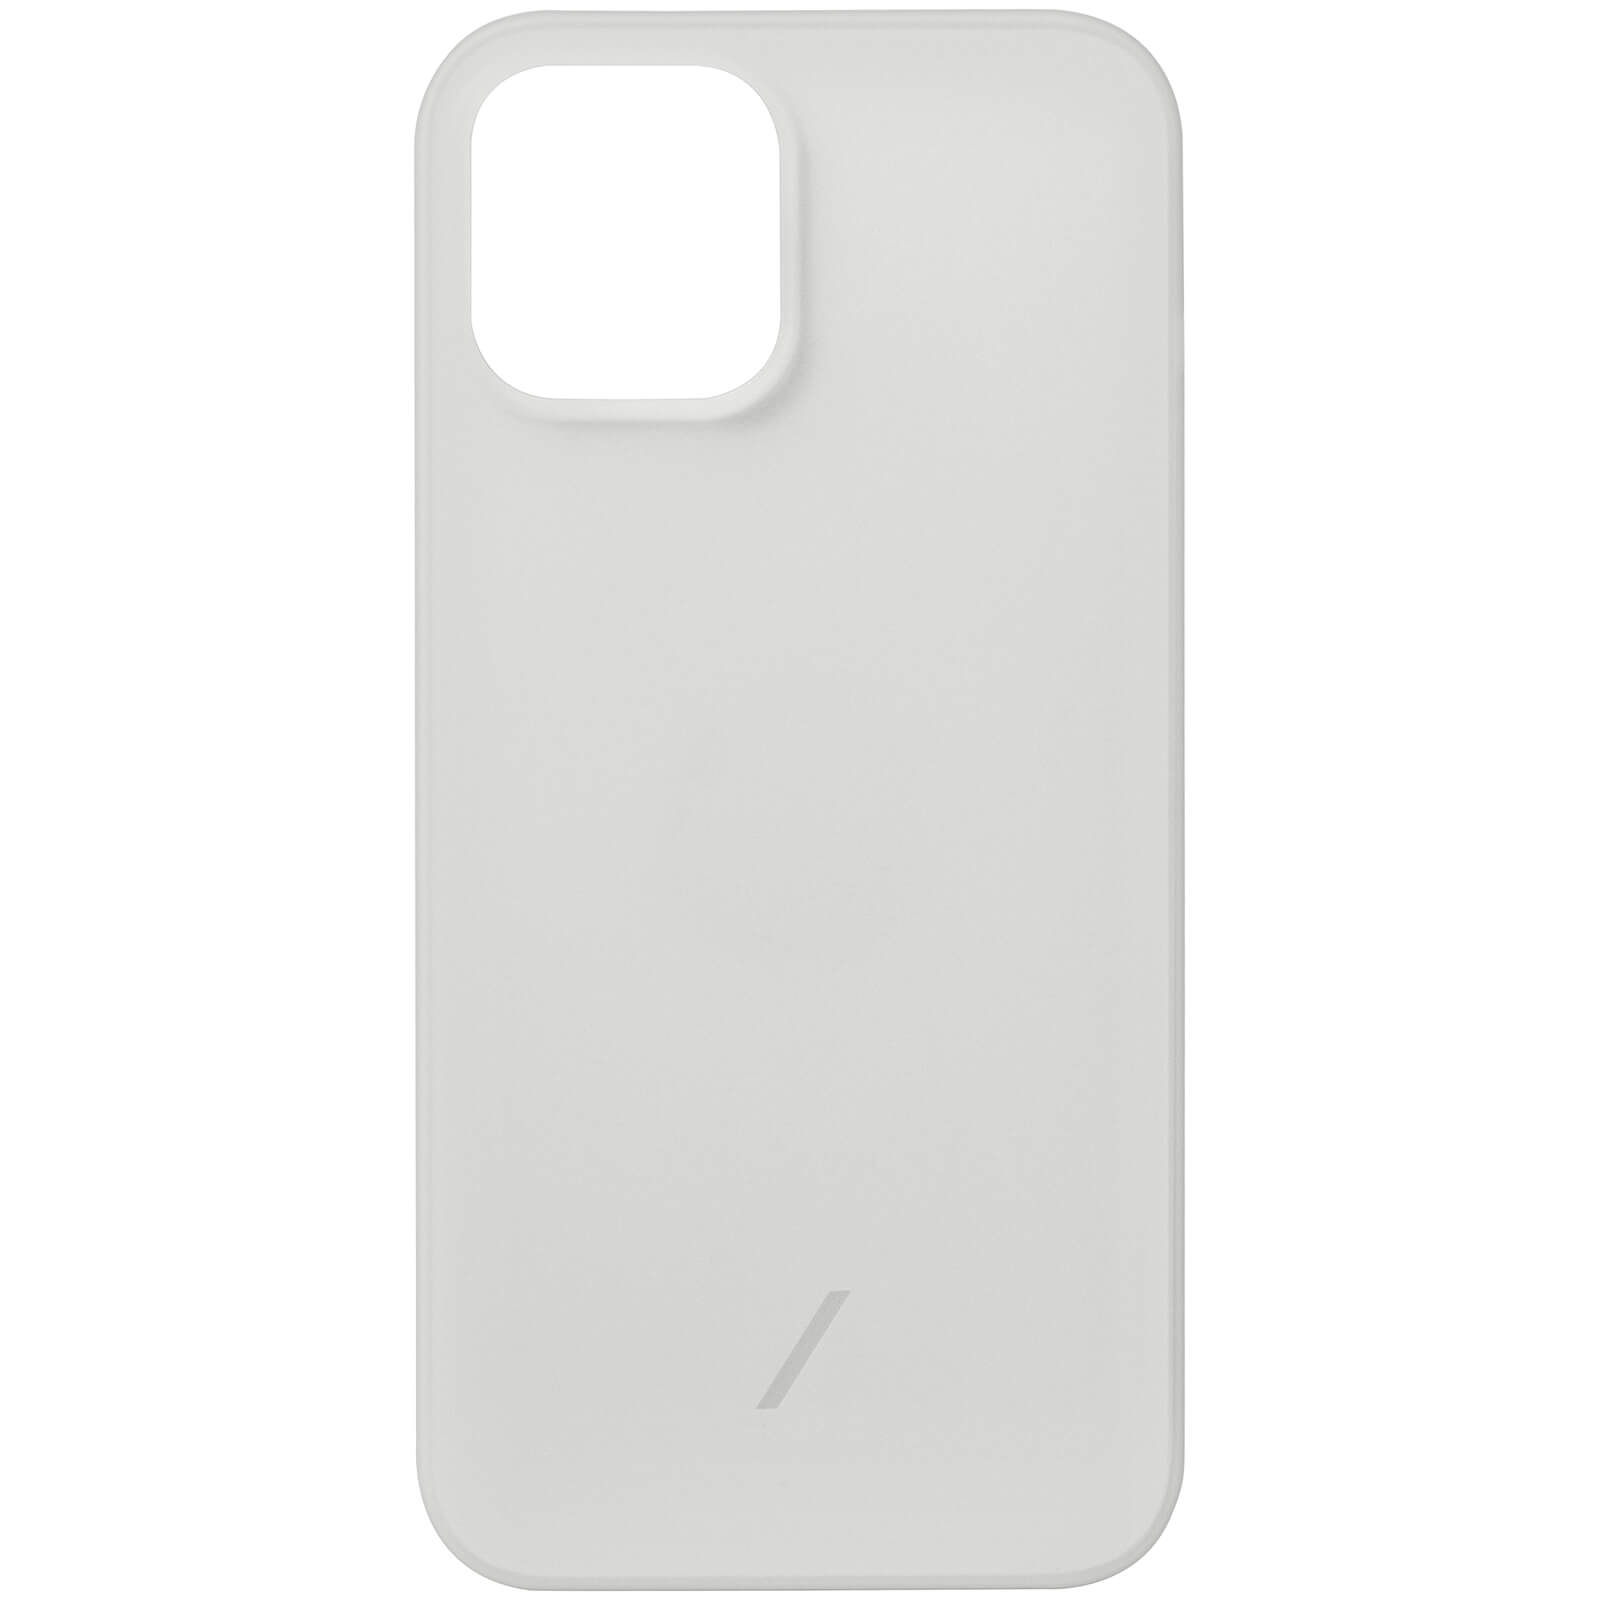 Native Union Clic Air Anti-Bacterial iPhone Case - Frost - 12 Mini